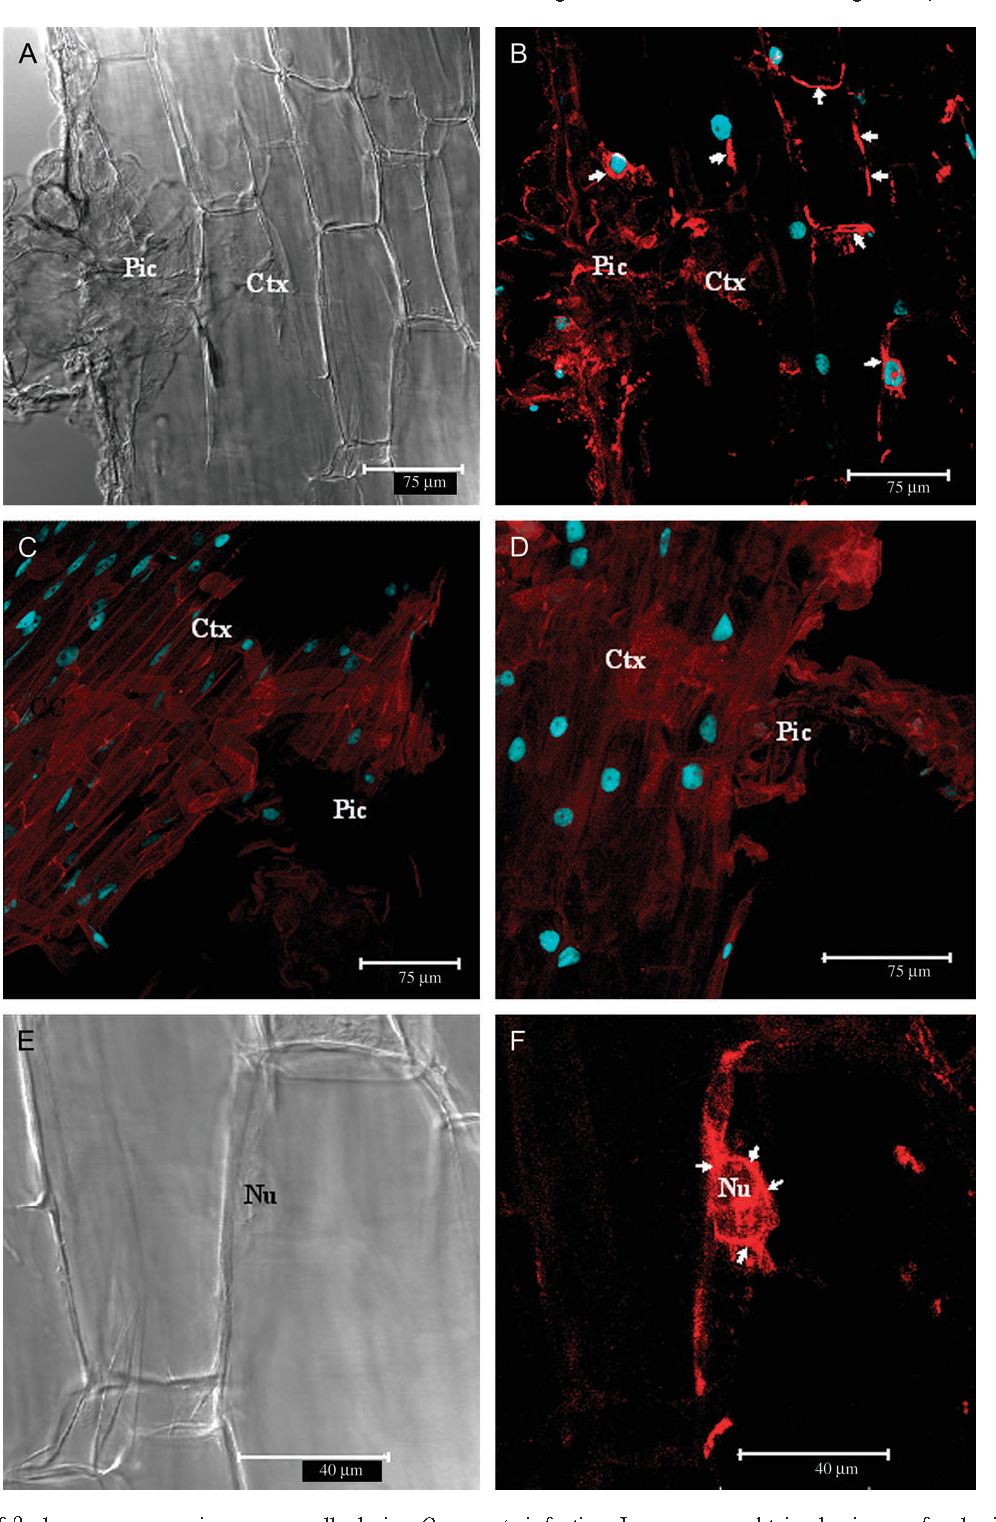 Fig. 5. Localization of b-glucanase expression on pea cells during O. crenata infection. Images were obtained using confocal microscopy and are full Z-series projections in (B), (C), (D), and (F), and single optical sections (Nomarsky) in (A) and (E). Nuclei appears blue due to DAPI staining. (A) Longitudinal section of an incompatible interaction of Orobanche crenata on resistant pea hybridized with the anti-sense probe. (B) The same as (A) showing the hybridization signal of the anti-sense probe (arrows). (C) Longitudinal section of a compatible interaction ofOrobanche crenata on resistant pea showing the absence of hybridization signal with the anti-sense probe. (D) Longitudinal section of an incompatible interaction of Orobanche crenata on resistant pea showing the absence of hybridization signal with the sense probe. (E) Detail of a cell of resistant pea hybridized with the anti-sense probe. (F) The same as (E) showing the hybridization signal of the anti-sense probe, mainly around the nucleus (arrows). Ctx, cortex; Pic, parasite intrusive cells; Nu, nucleus.